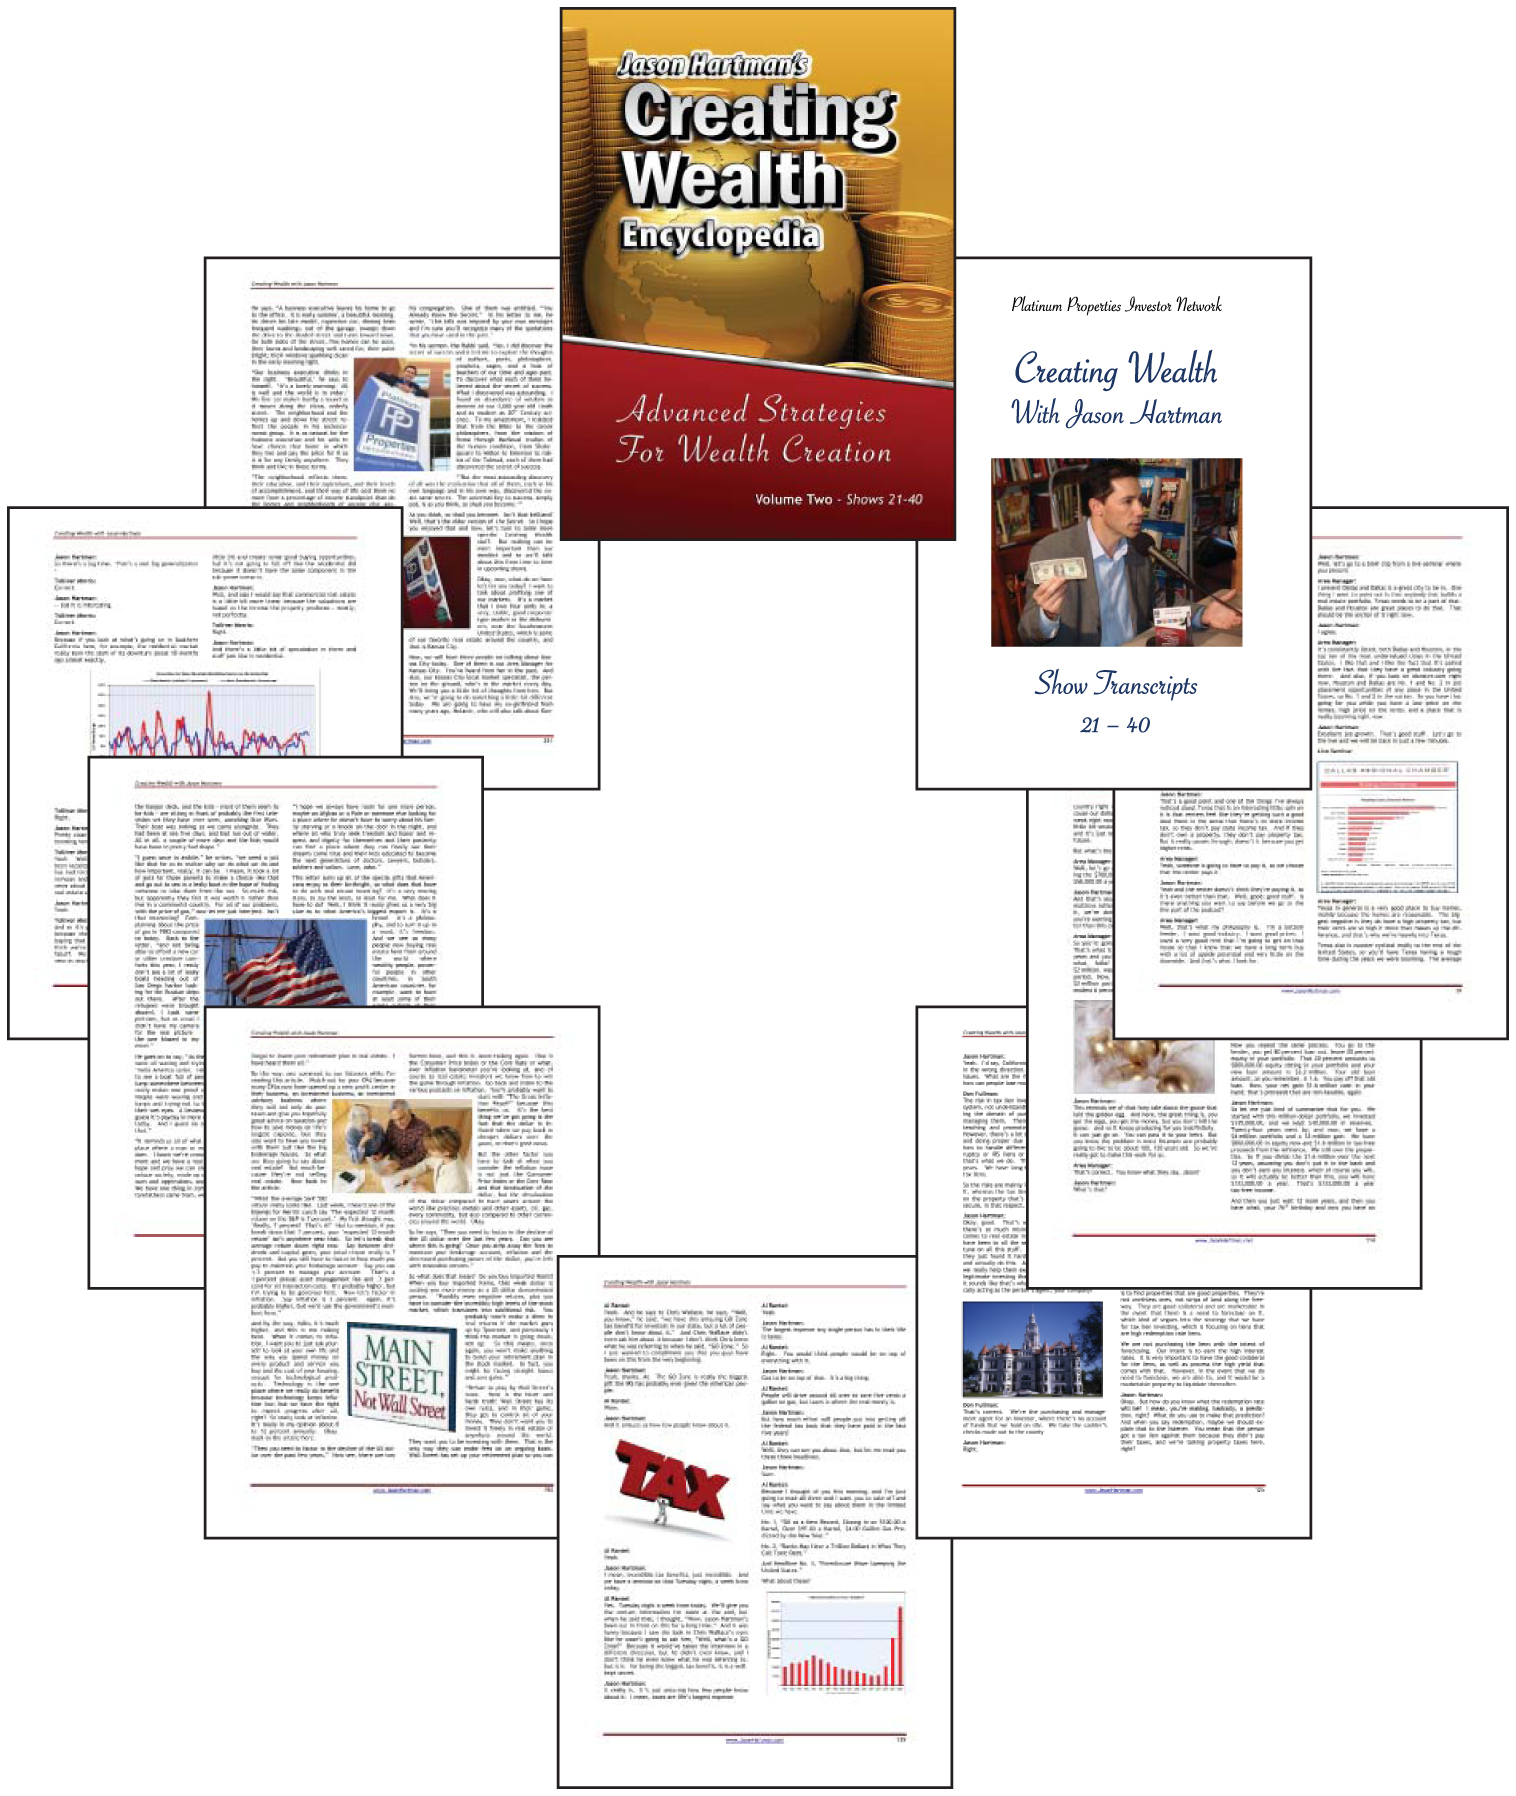 Jason Hartman's Creating Wealth Encyclopedia Book 21-40 10-page_3